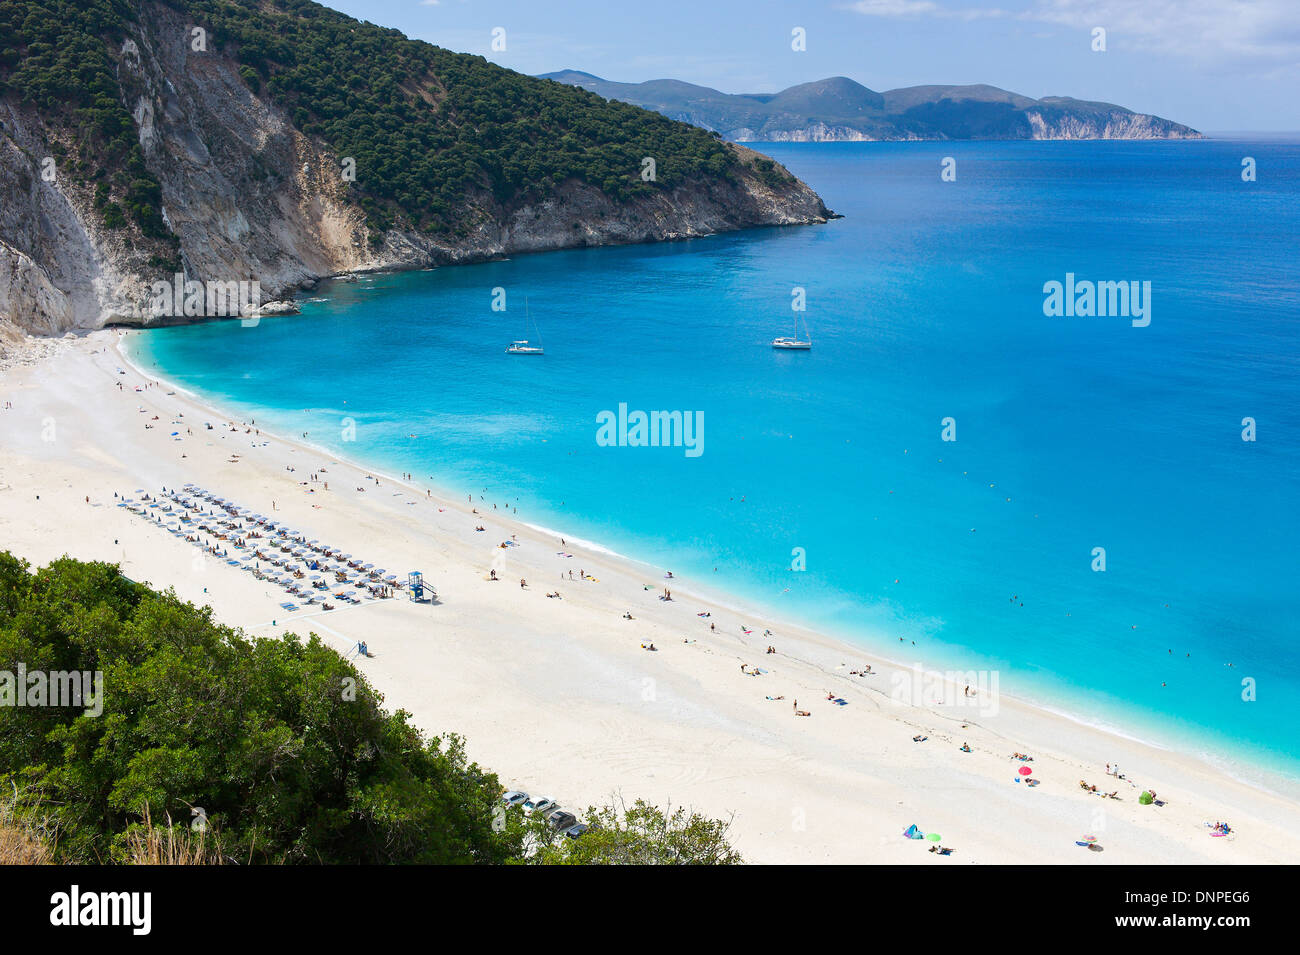 Overlooking the white Myrtos Beach, Cefalonia, Greece - Stock Image